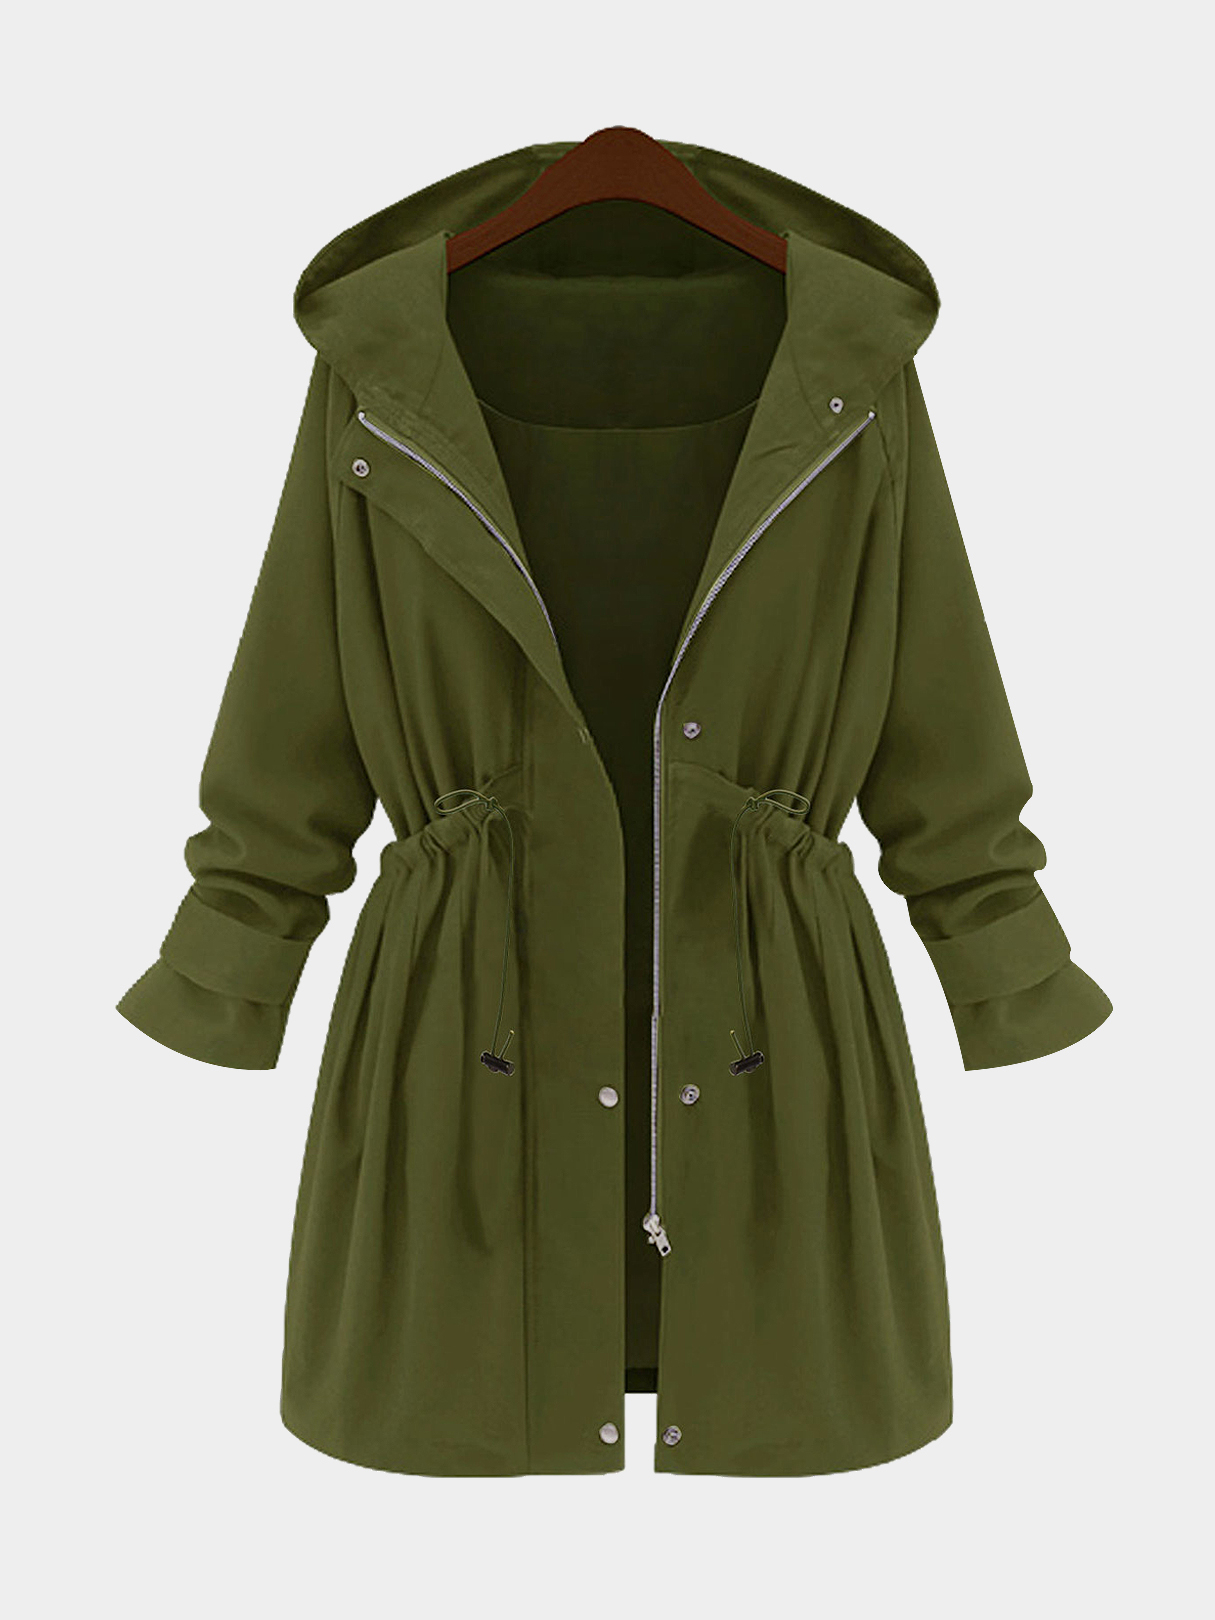 Plus Size Army Green Hooded Parka Coat